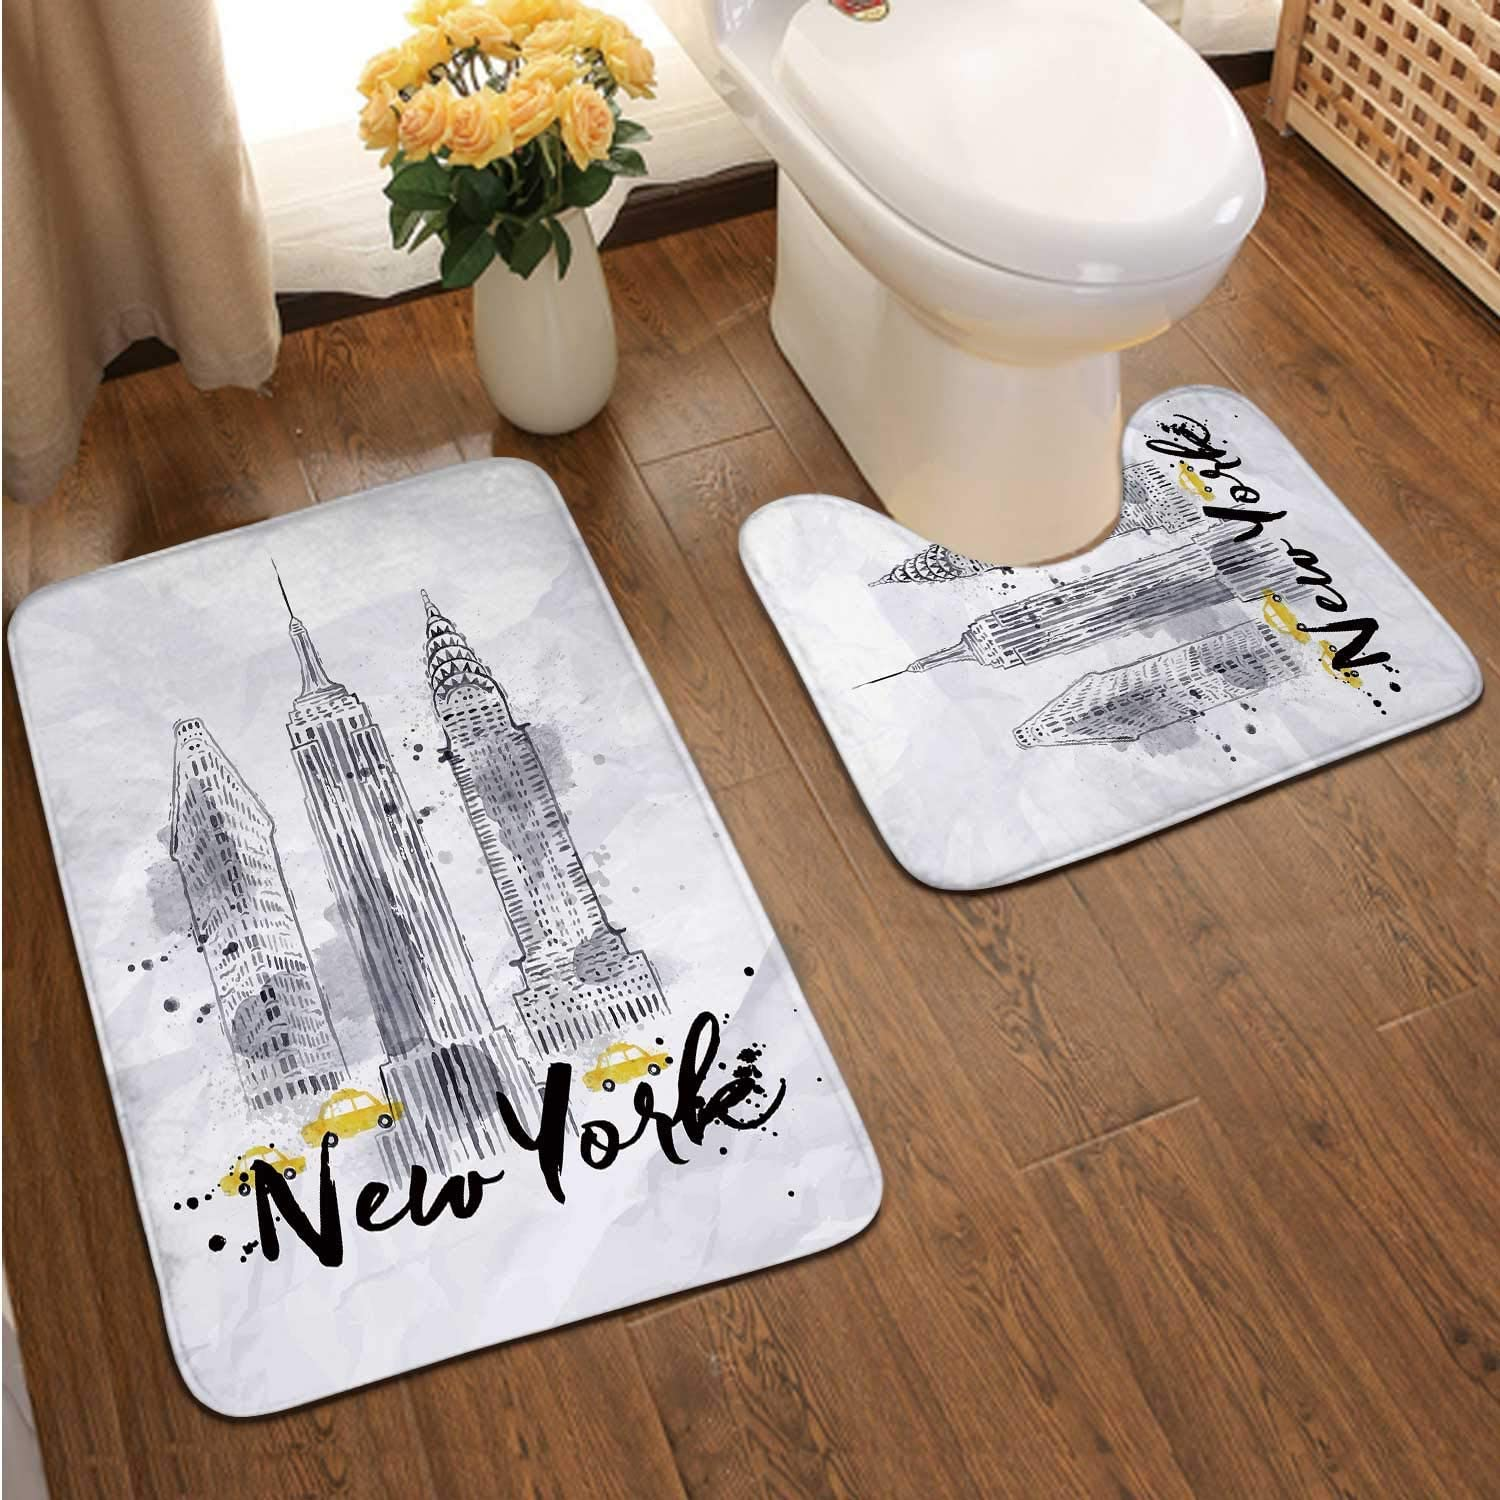 New ork skscrapers Empire State Building in STLE Drawing with Drops and Splashes on Crumpled Paper,Bathroom Rugs Luxur Bath Mat,Super Absorbent Non-Slip Bath Mats